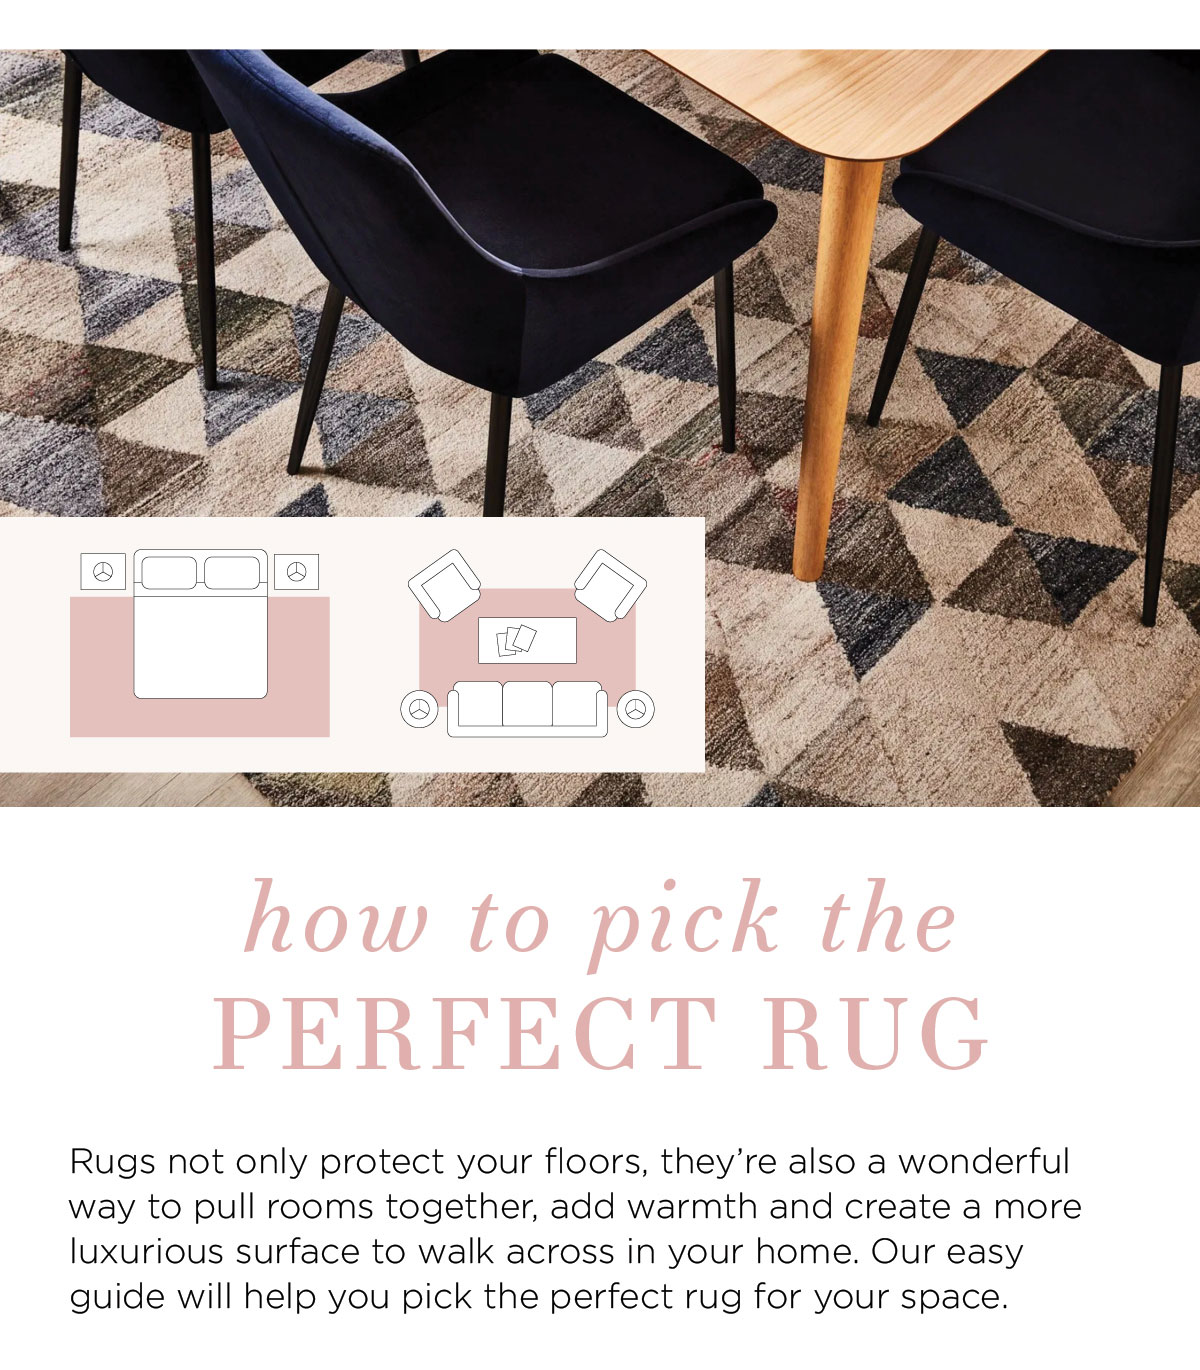 2021 Rug Collection: How to pick the perfect rug Rugs not only protect your floors, they're also a wonderful way to pull rooms together, add warmth and create a more luxurious surface to walk across in your home. Our easy guide will help you pick the perfect rug for your space.